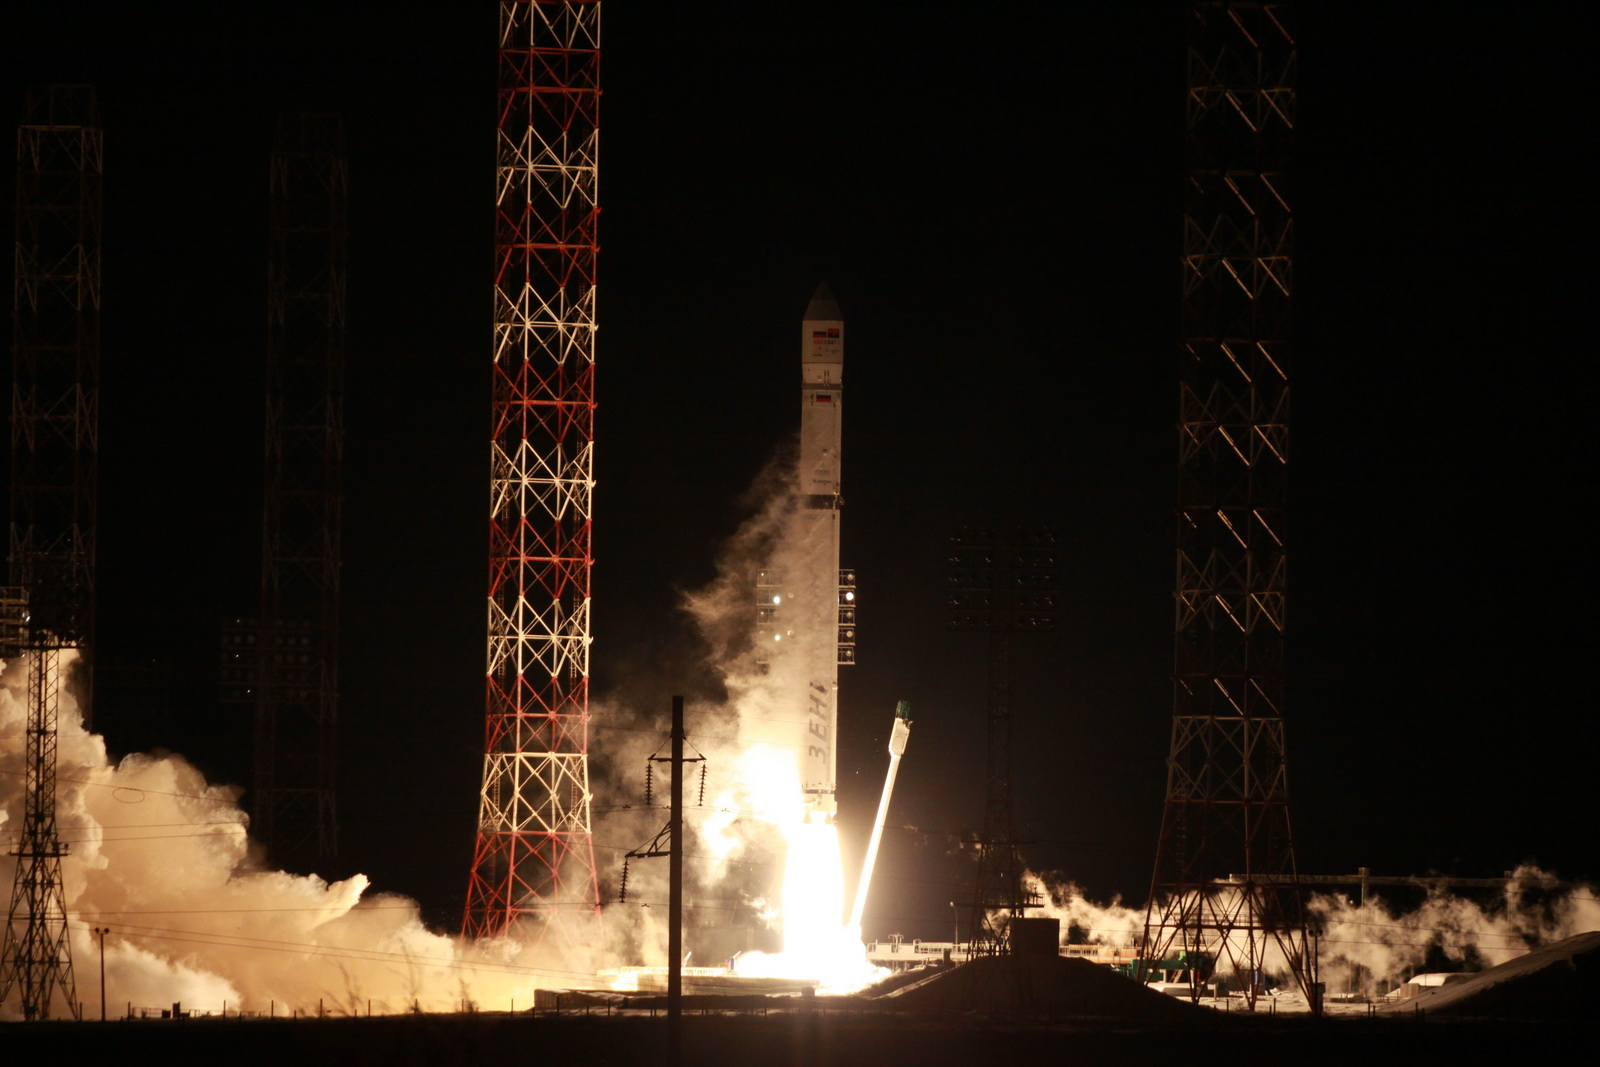 Contact lost with 1st Angolan satellite after launch from Baikonur spaceport